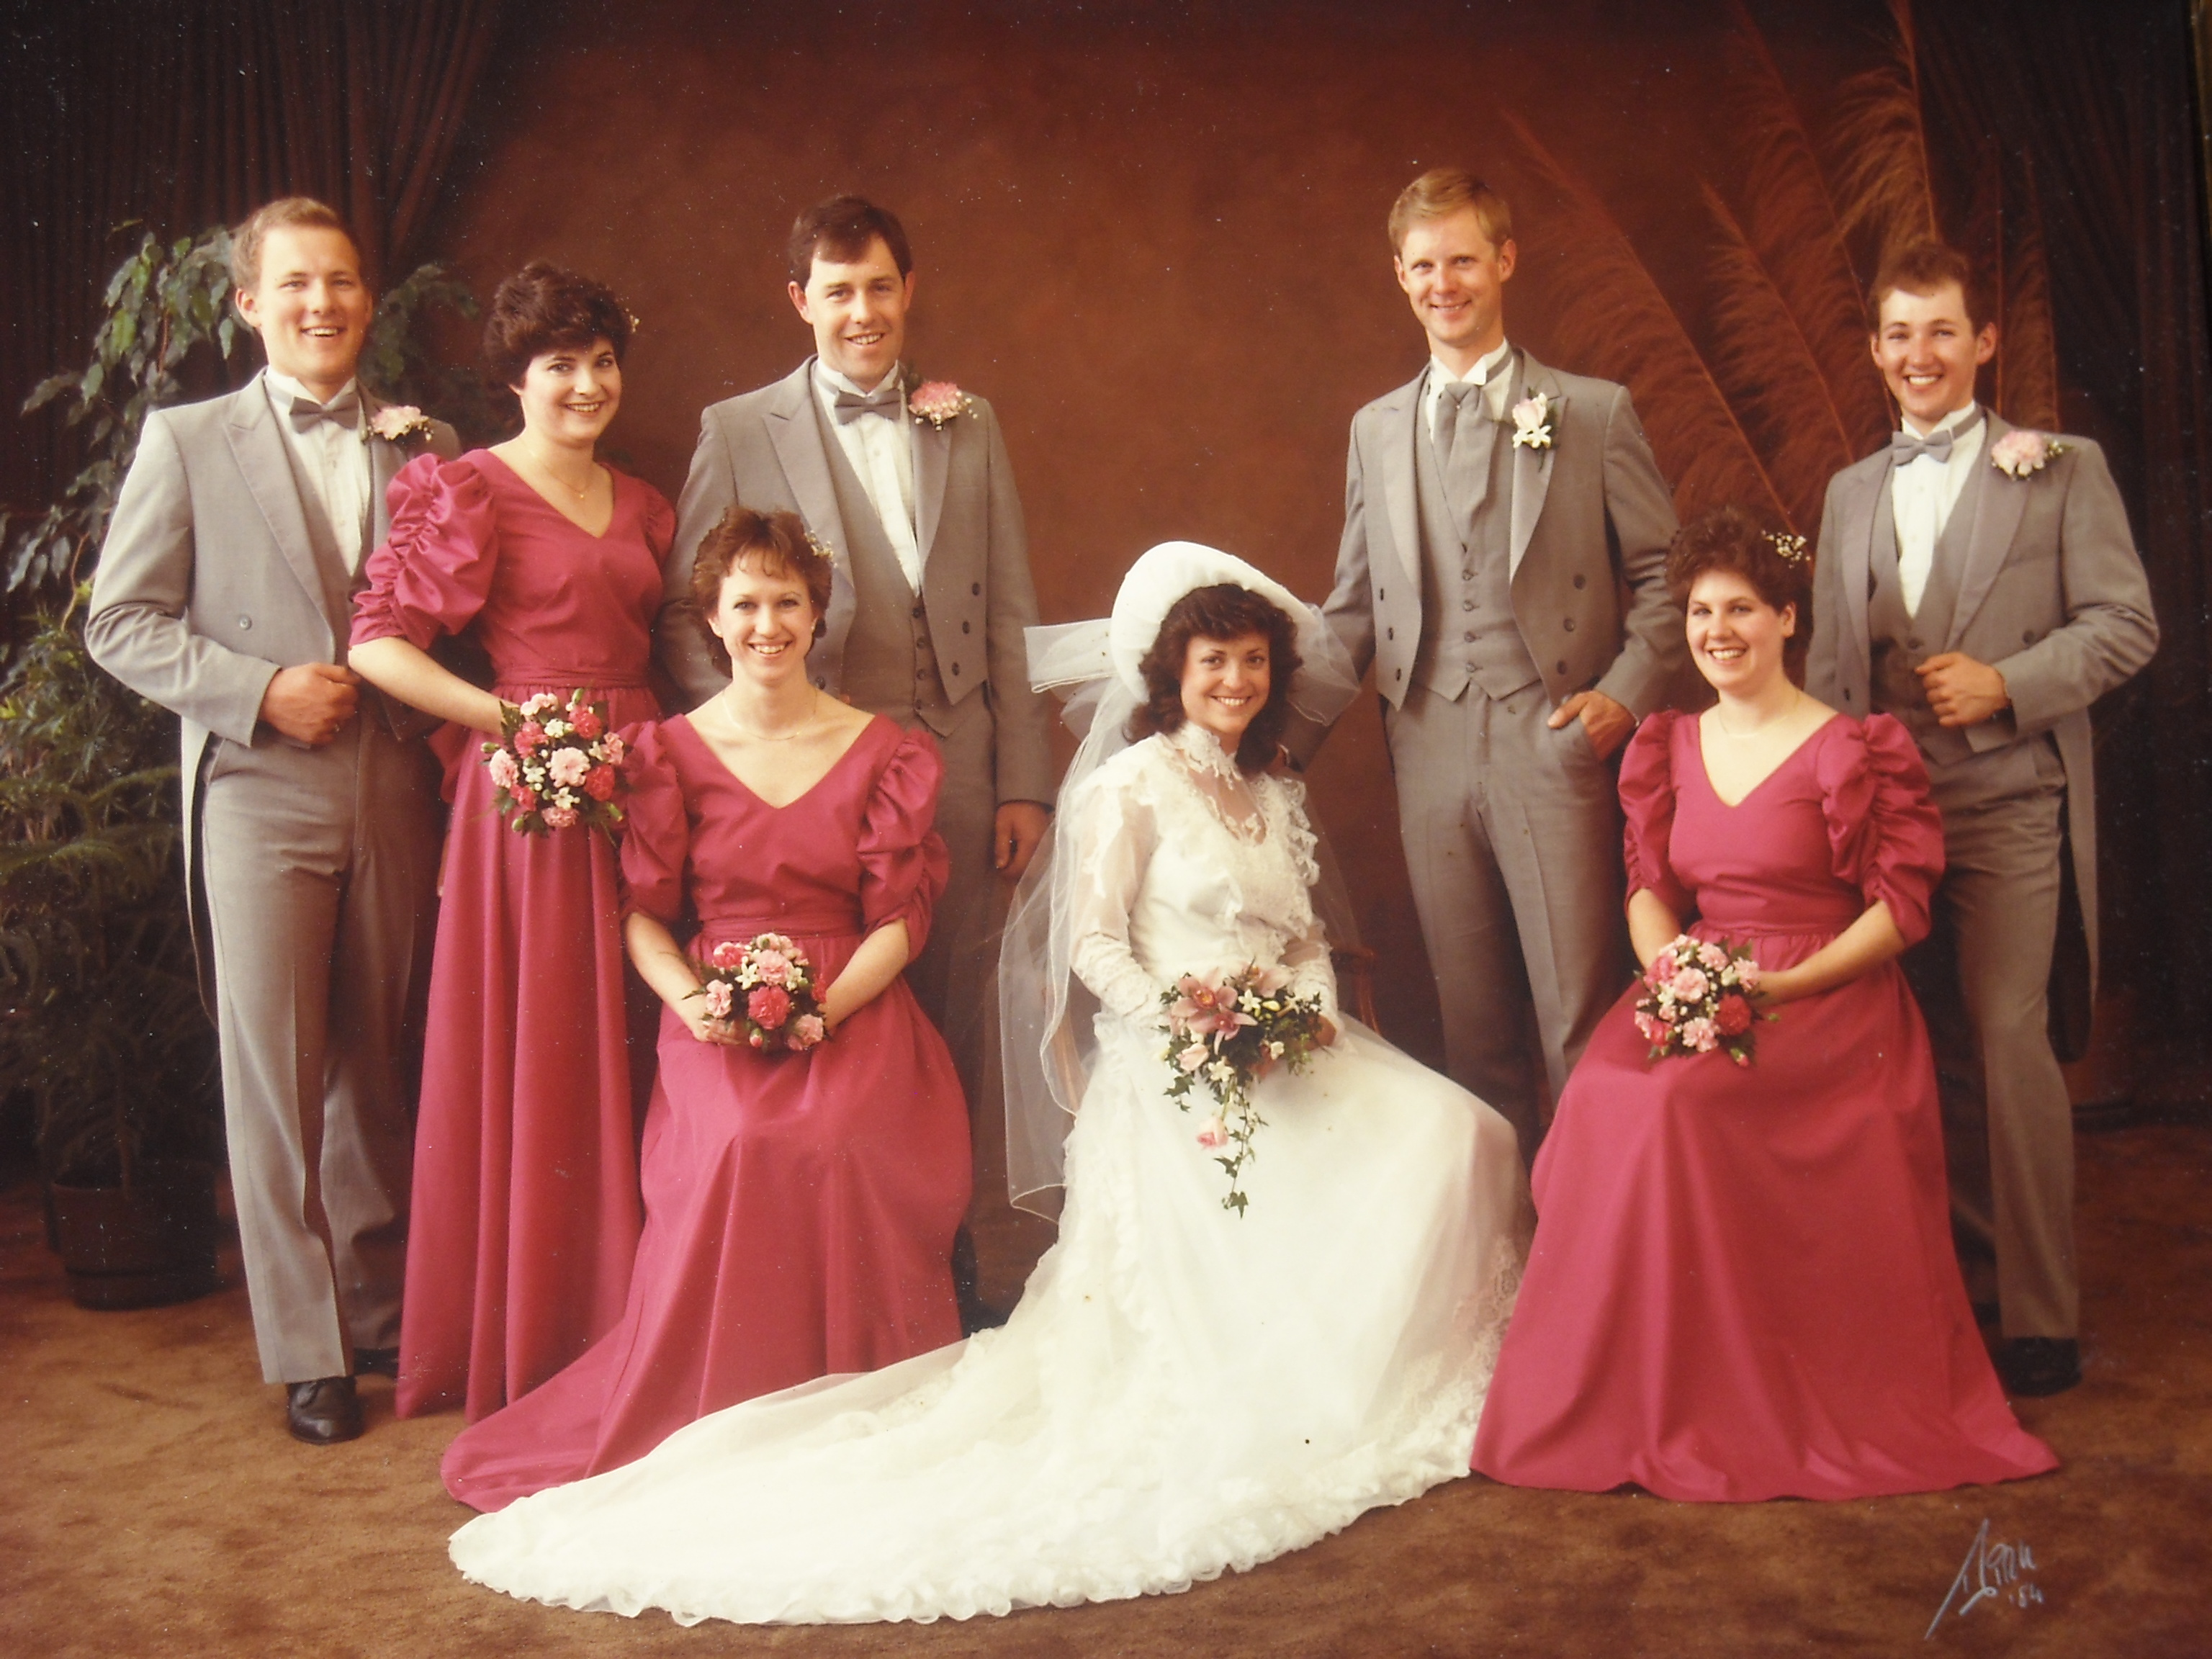 Our Wedding Party - 28 April 1984